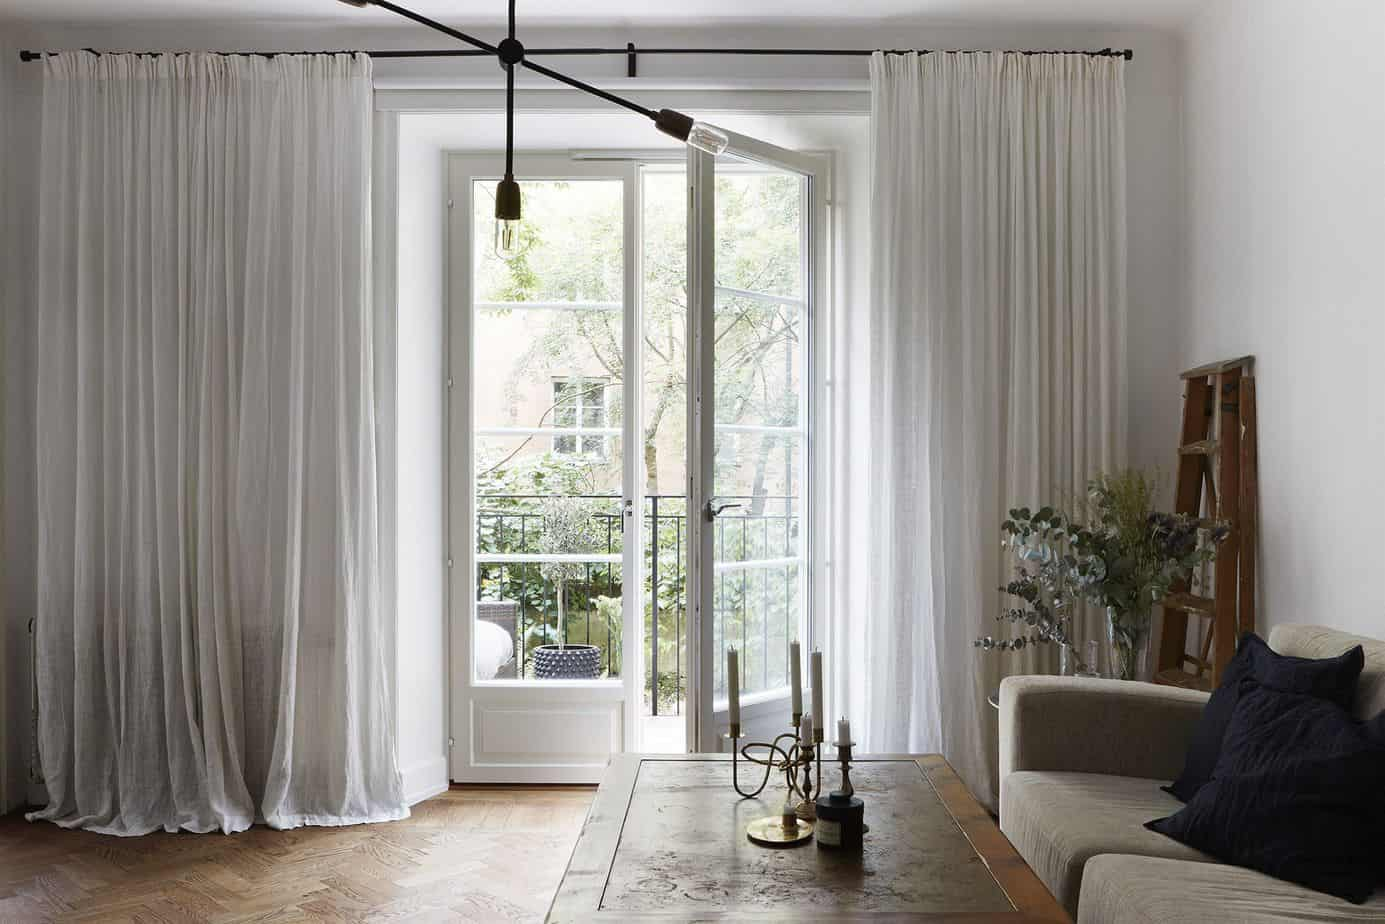 popular curtain ideas 2021 white sheer curtains for living room